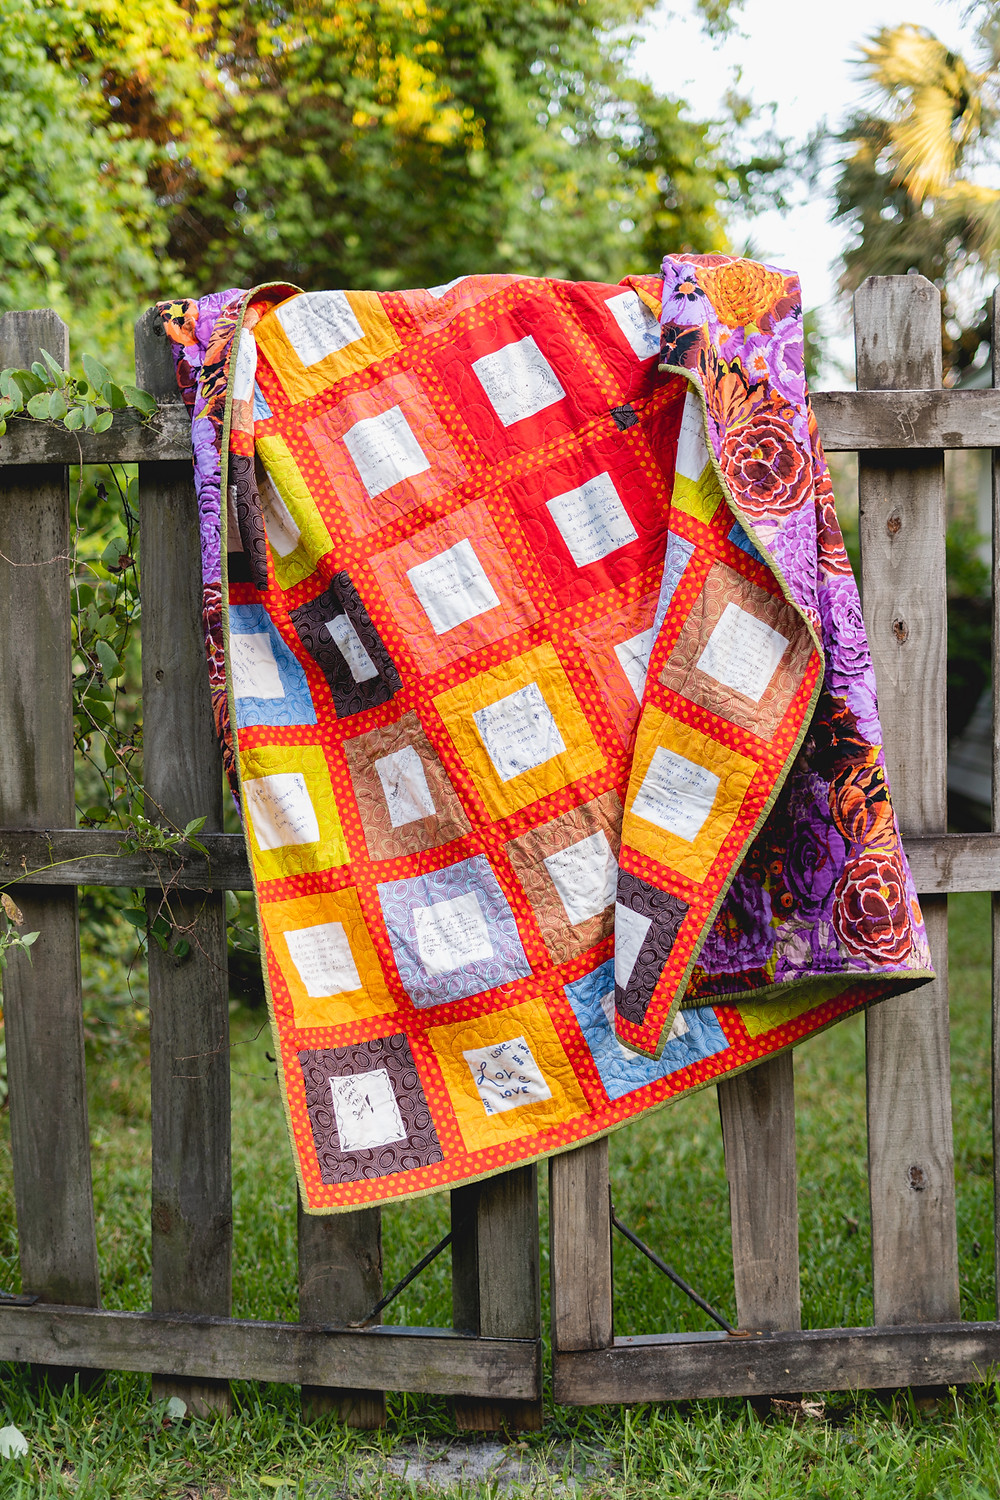 Colorful wedding guest book quilt by Anita Farace